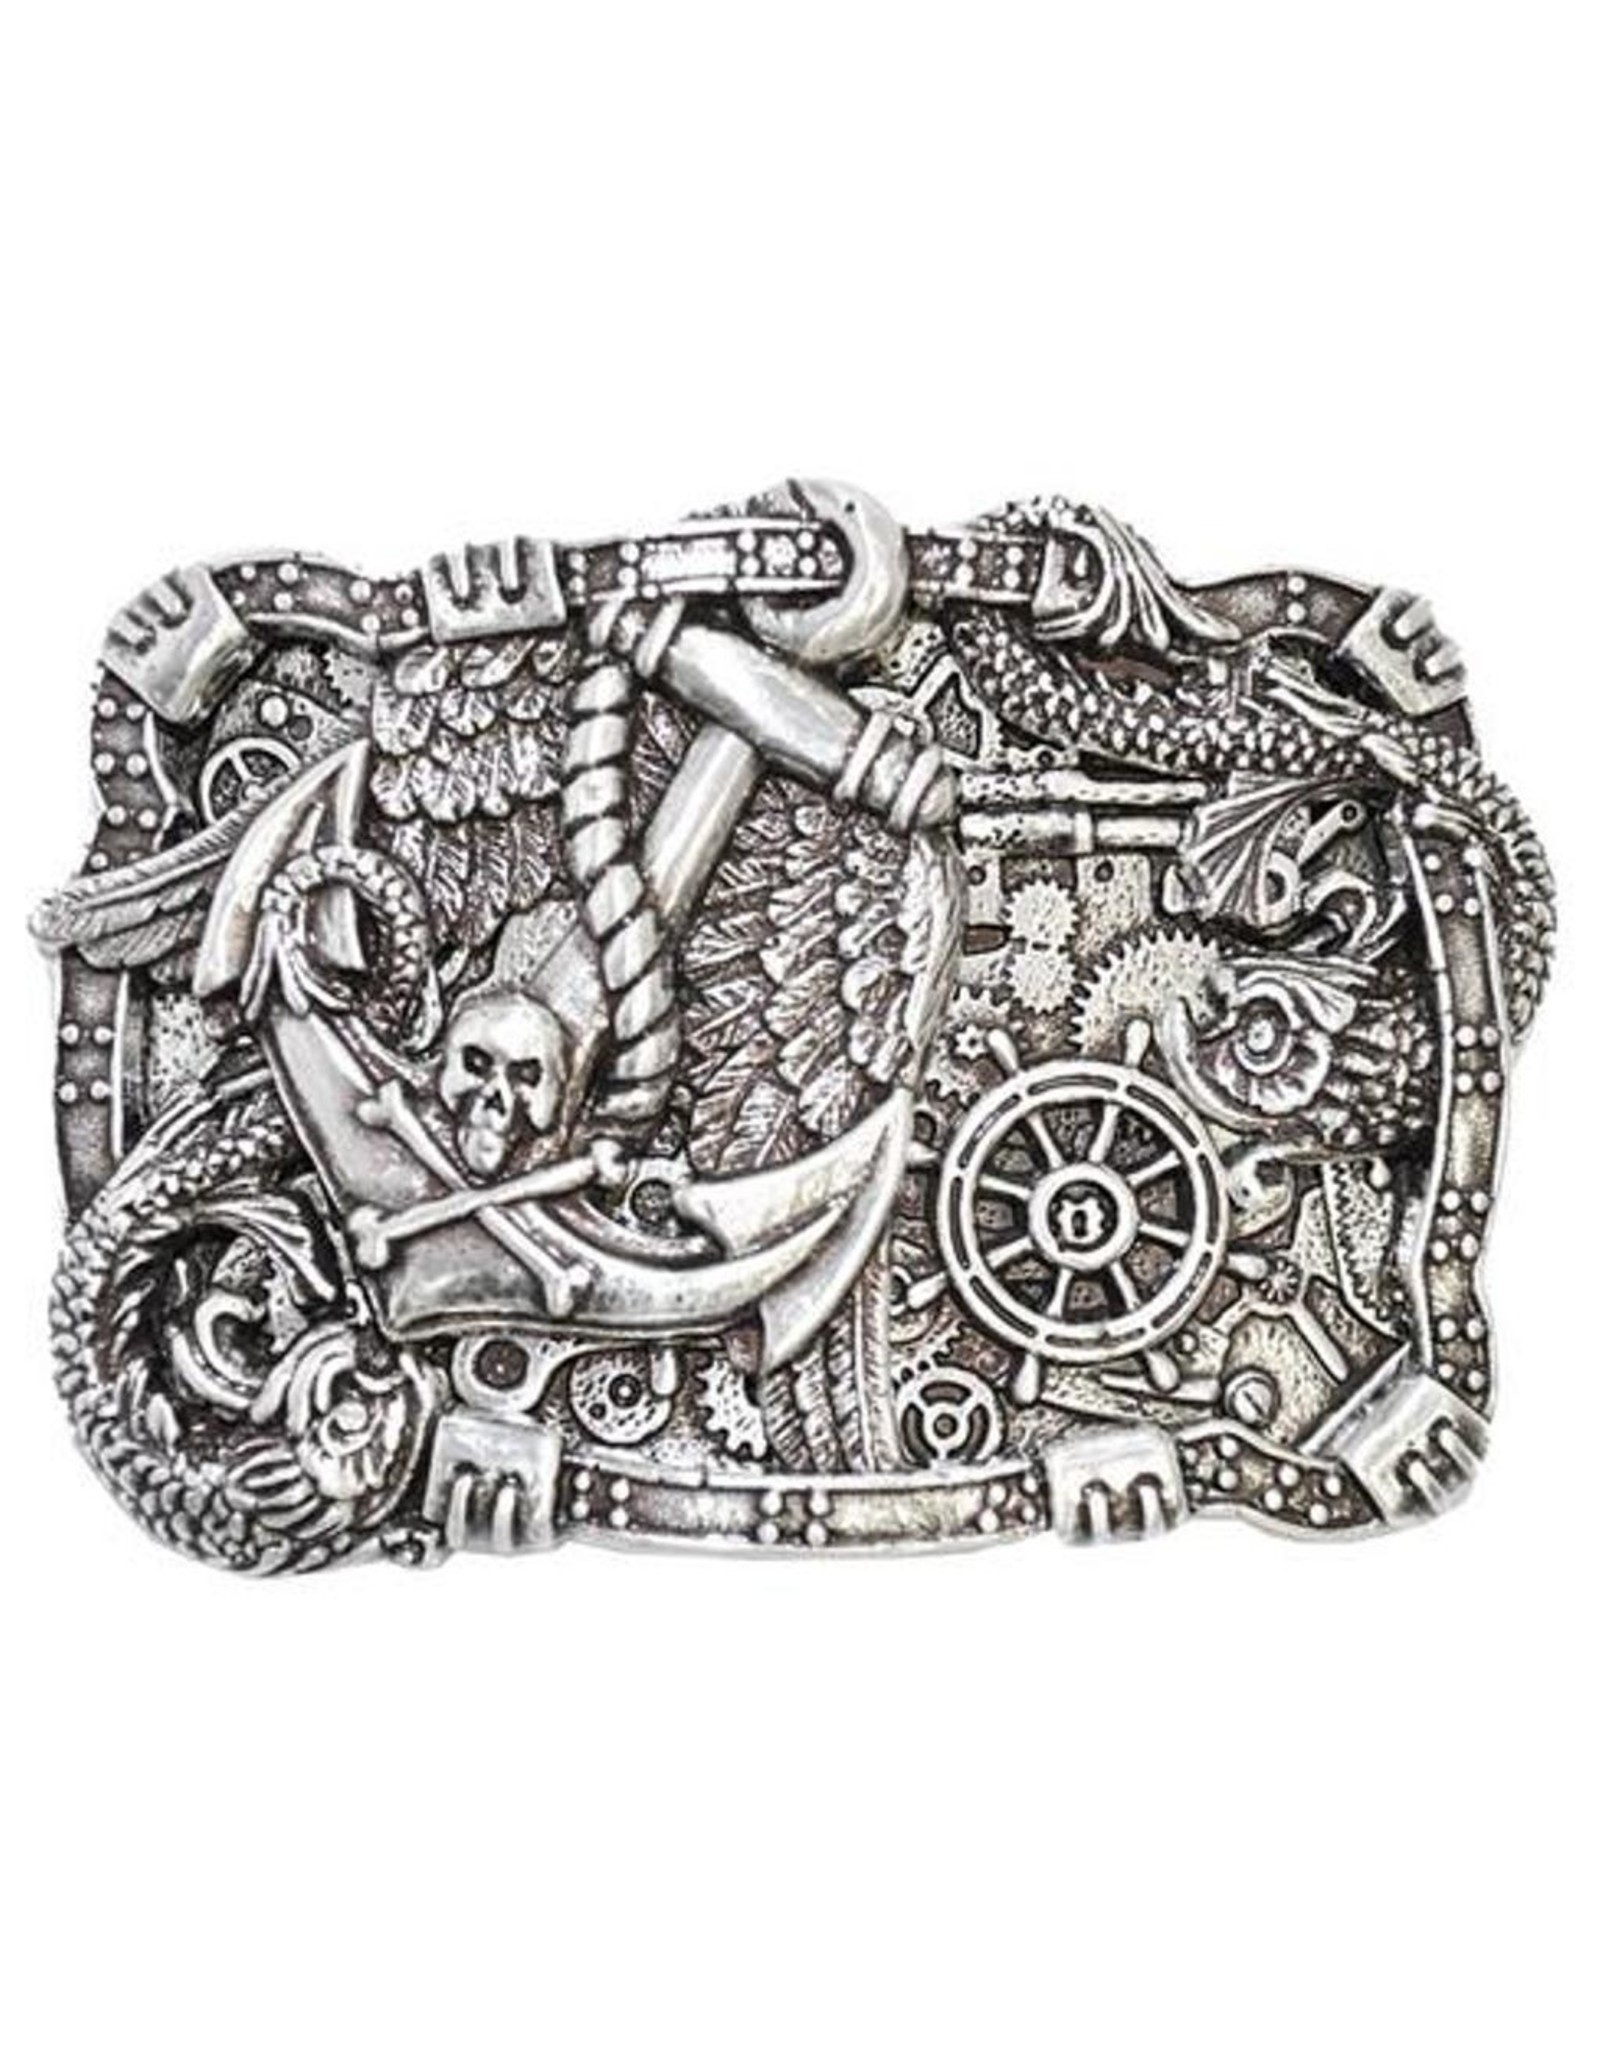 """Acco Leather belts and buckles - """"Buckle On The Sea"""""""